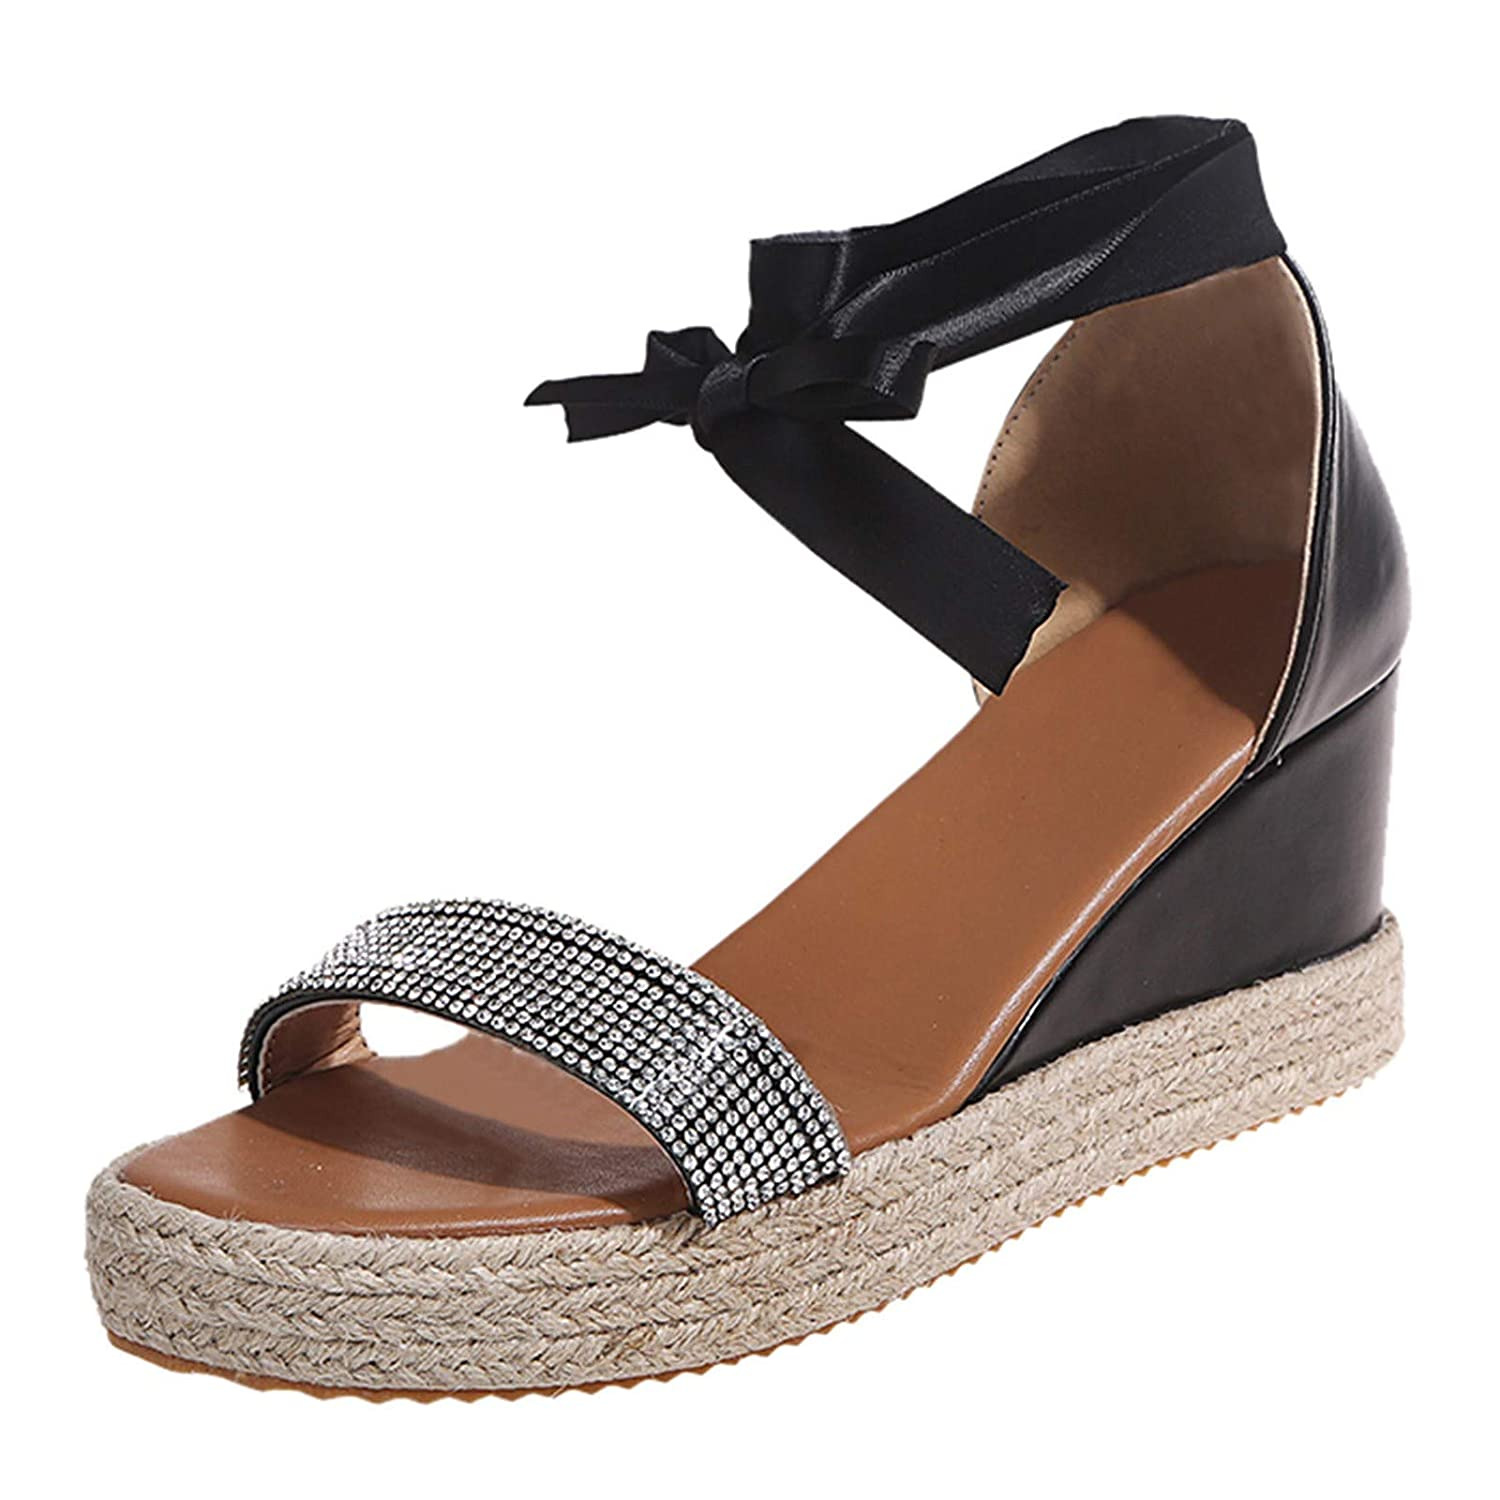 Reokoou Thick Max 78% OFF Bottom Platform Lowest price challenge Sandals Summer Shoes Casual Women